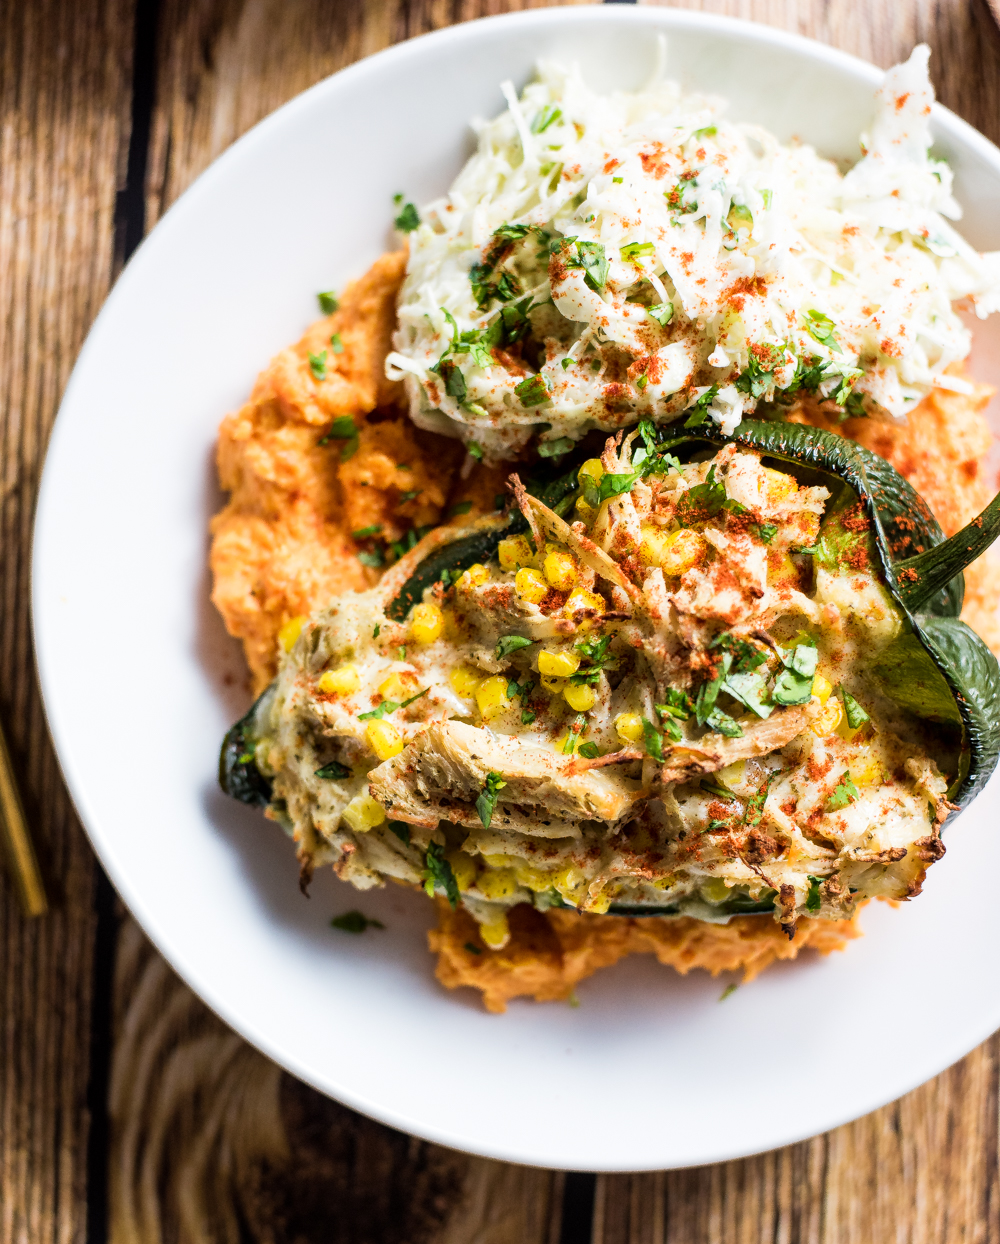 Stuffed poblano and sweet potato mash bowls are the perfect weeknight healthy recipe. It's packed full of flavor that will have you wanting more!